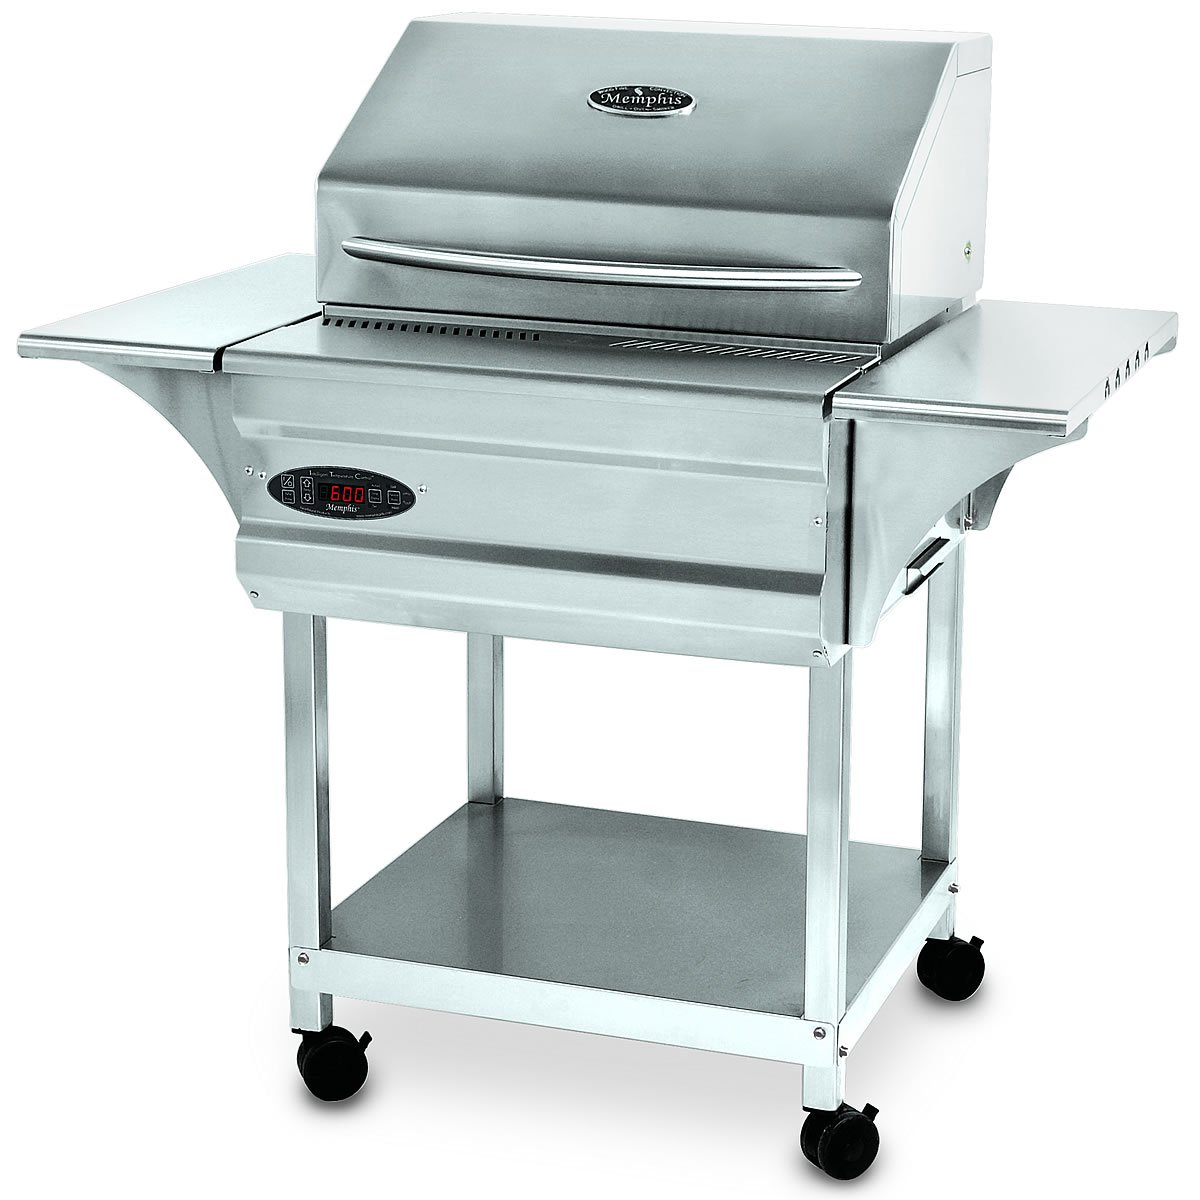 Memphis Grills Advantage Wood Fire Pellet Smoker Grill with Wi-Fi (VG0050S4), Freestanding, 430 Stainless Steel Alloy